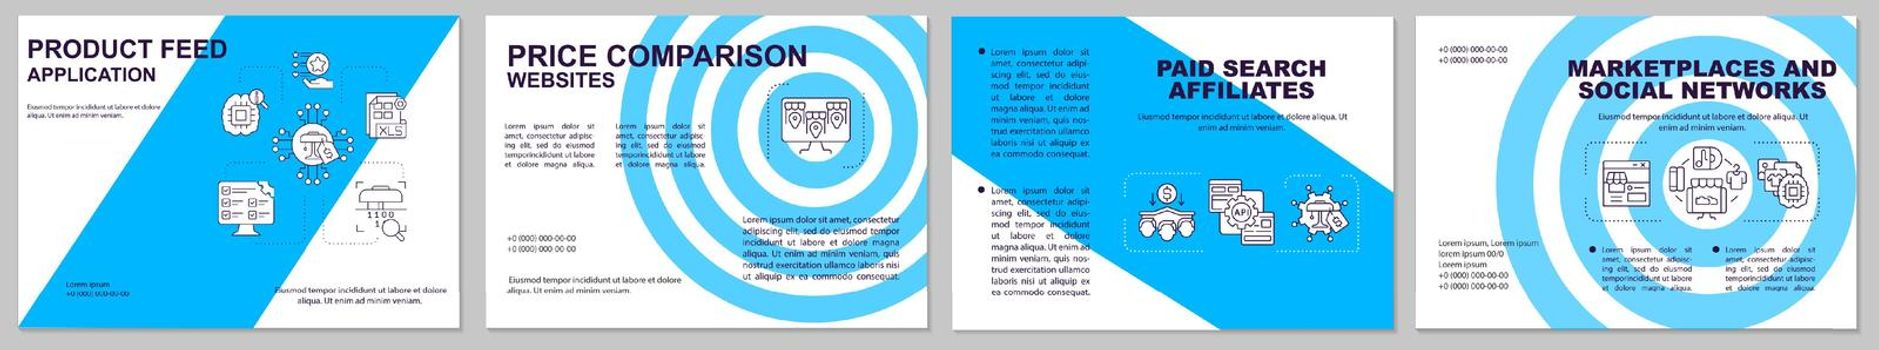 Product feed application brochure template